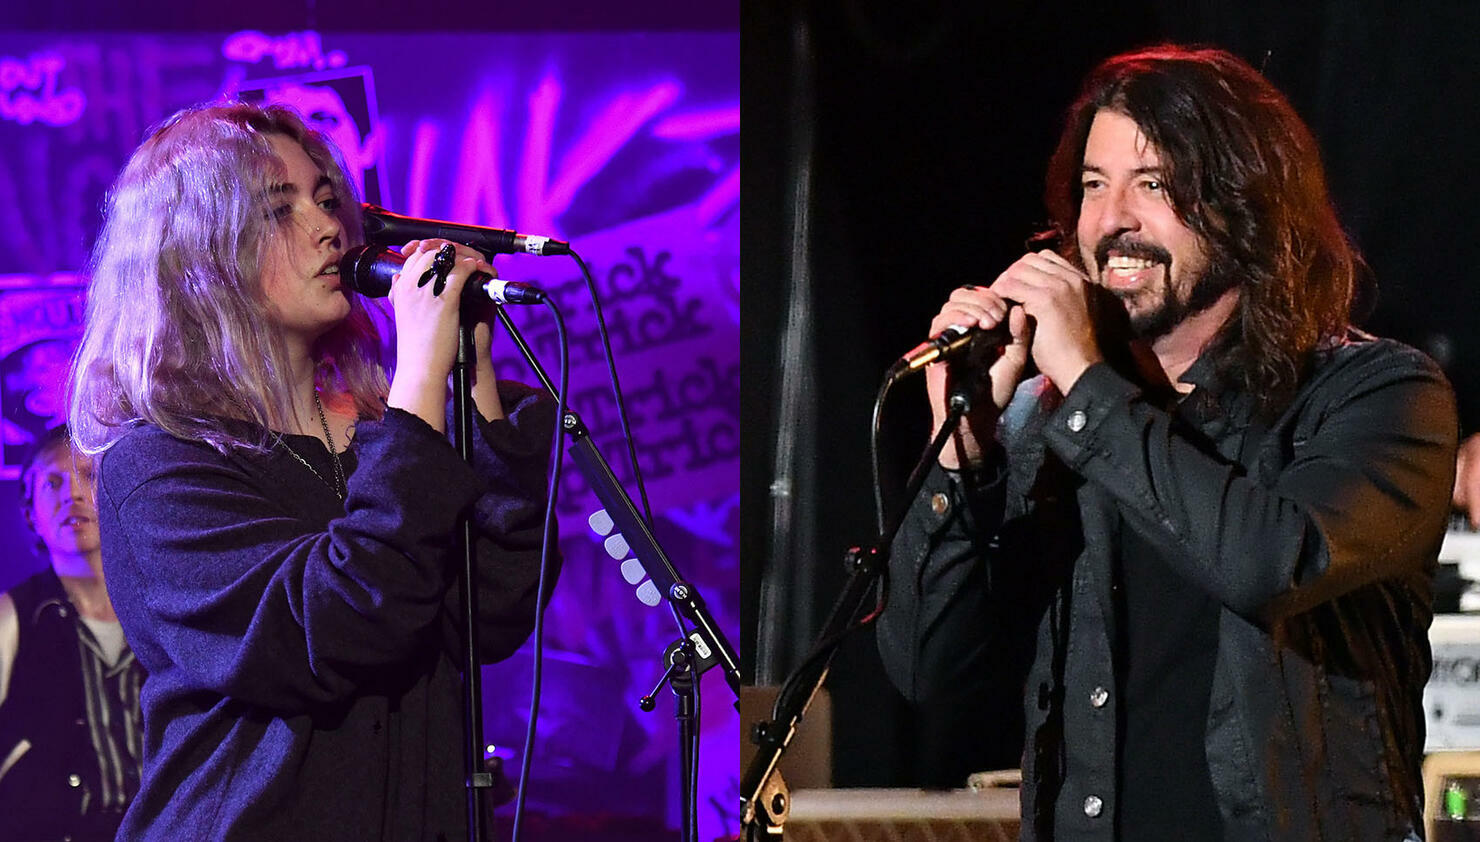 Dave Grohl & His Daughter Violet Make Live Debut Of 'Nausea' Collab